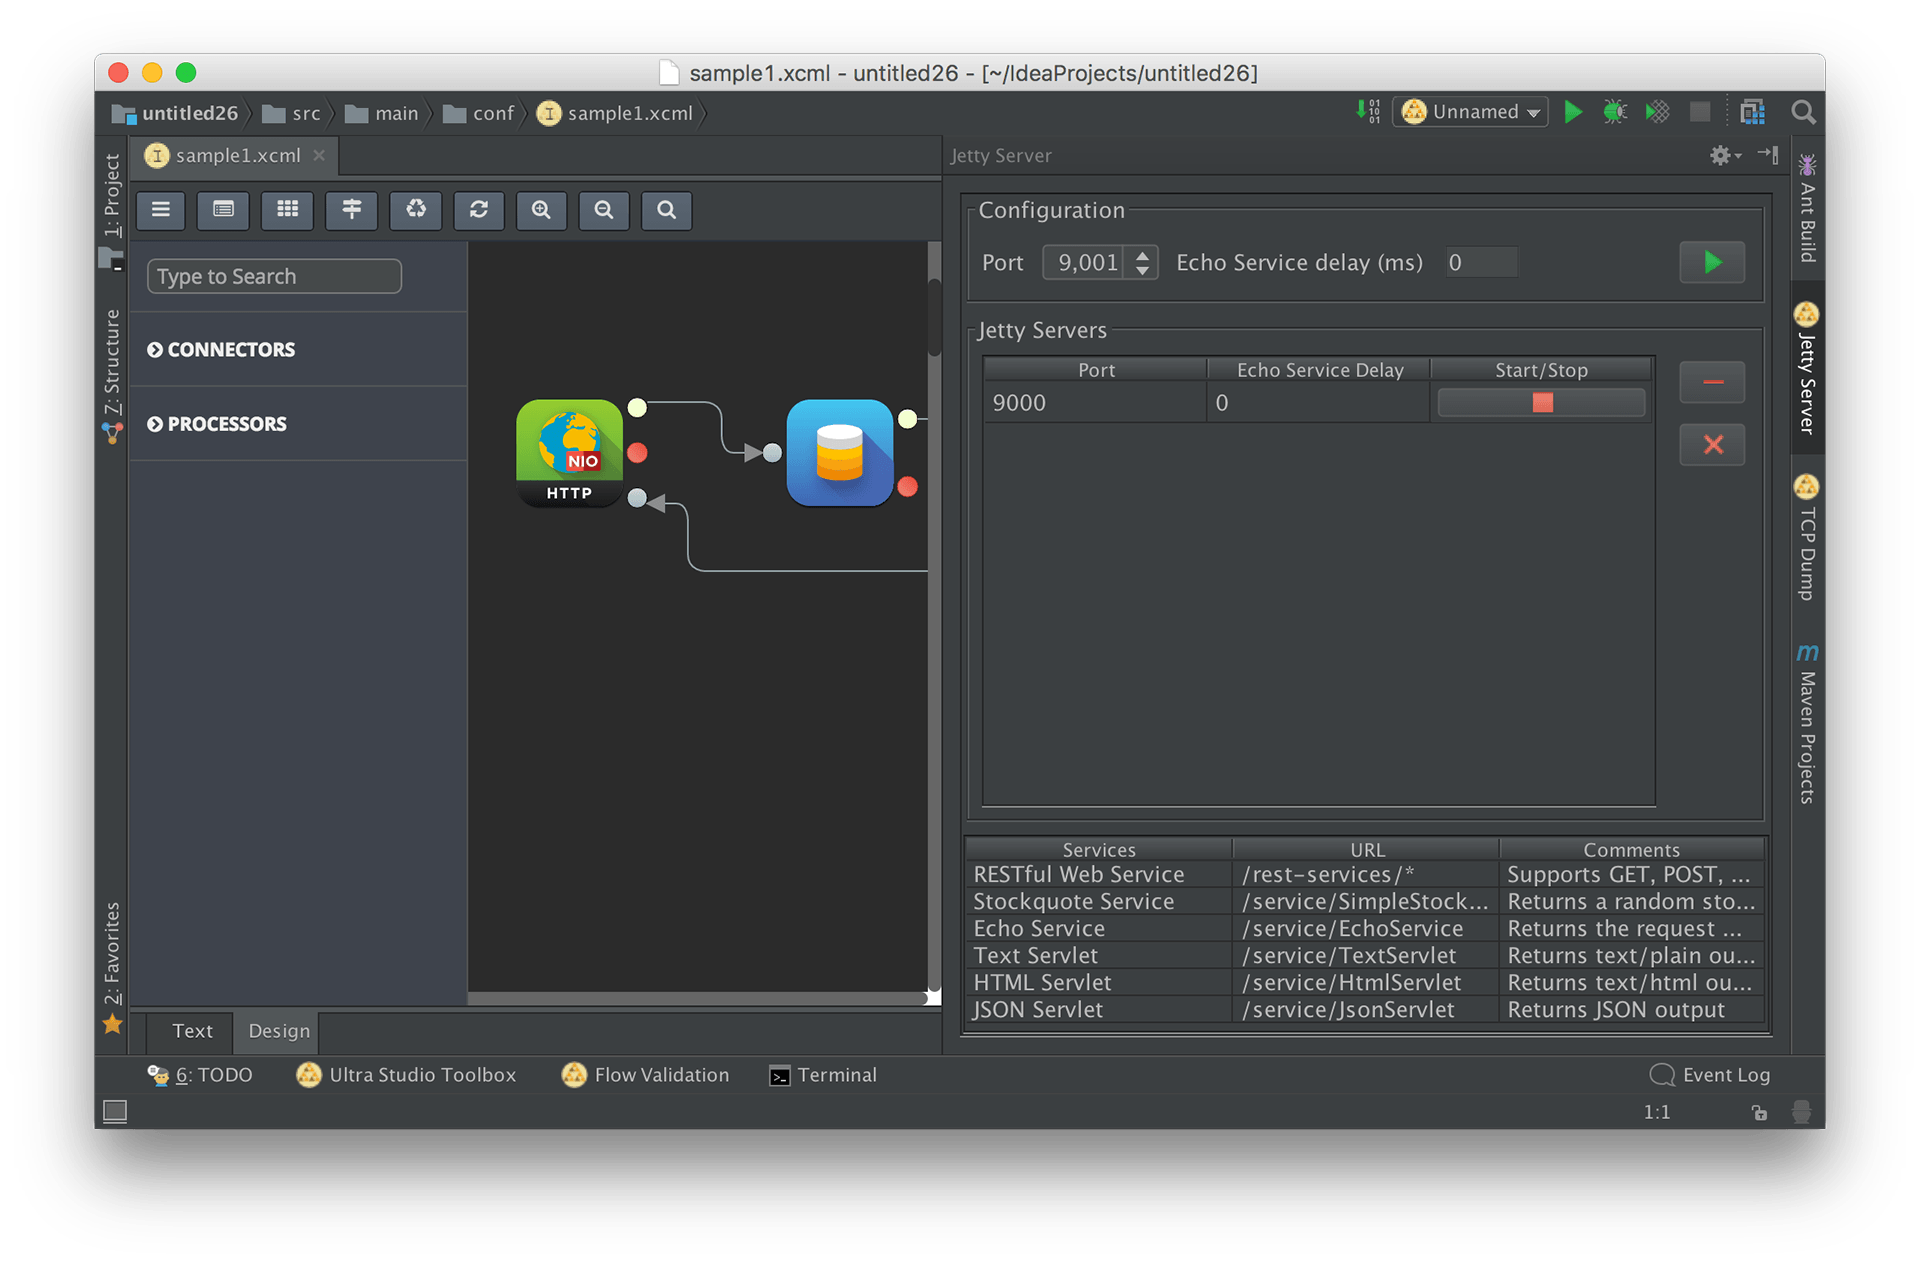 ultrastudio screenshot toolbox